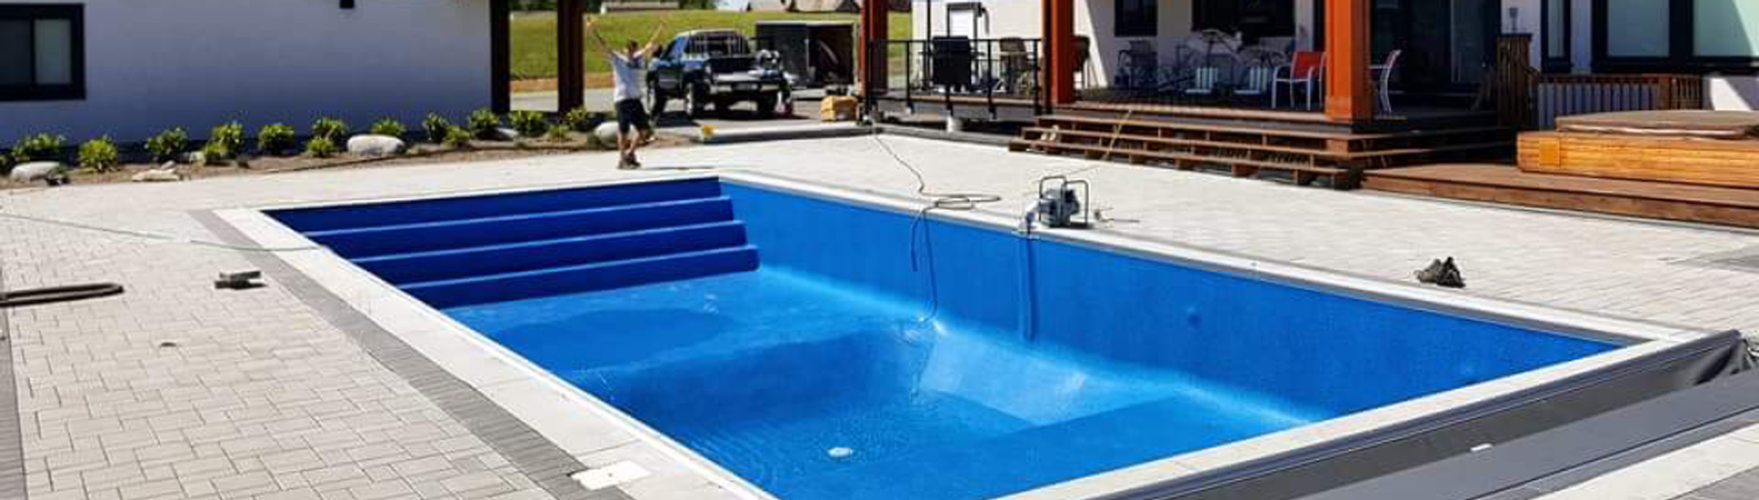 Swimming Pool Installation Service : Inground pool construction north vancouver bc vinyl